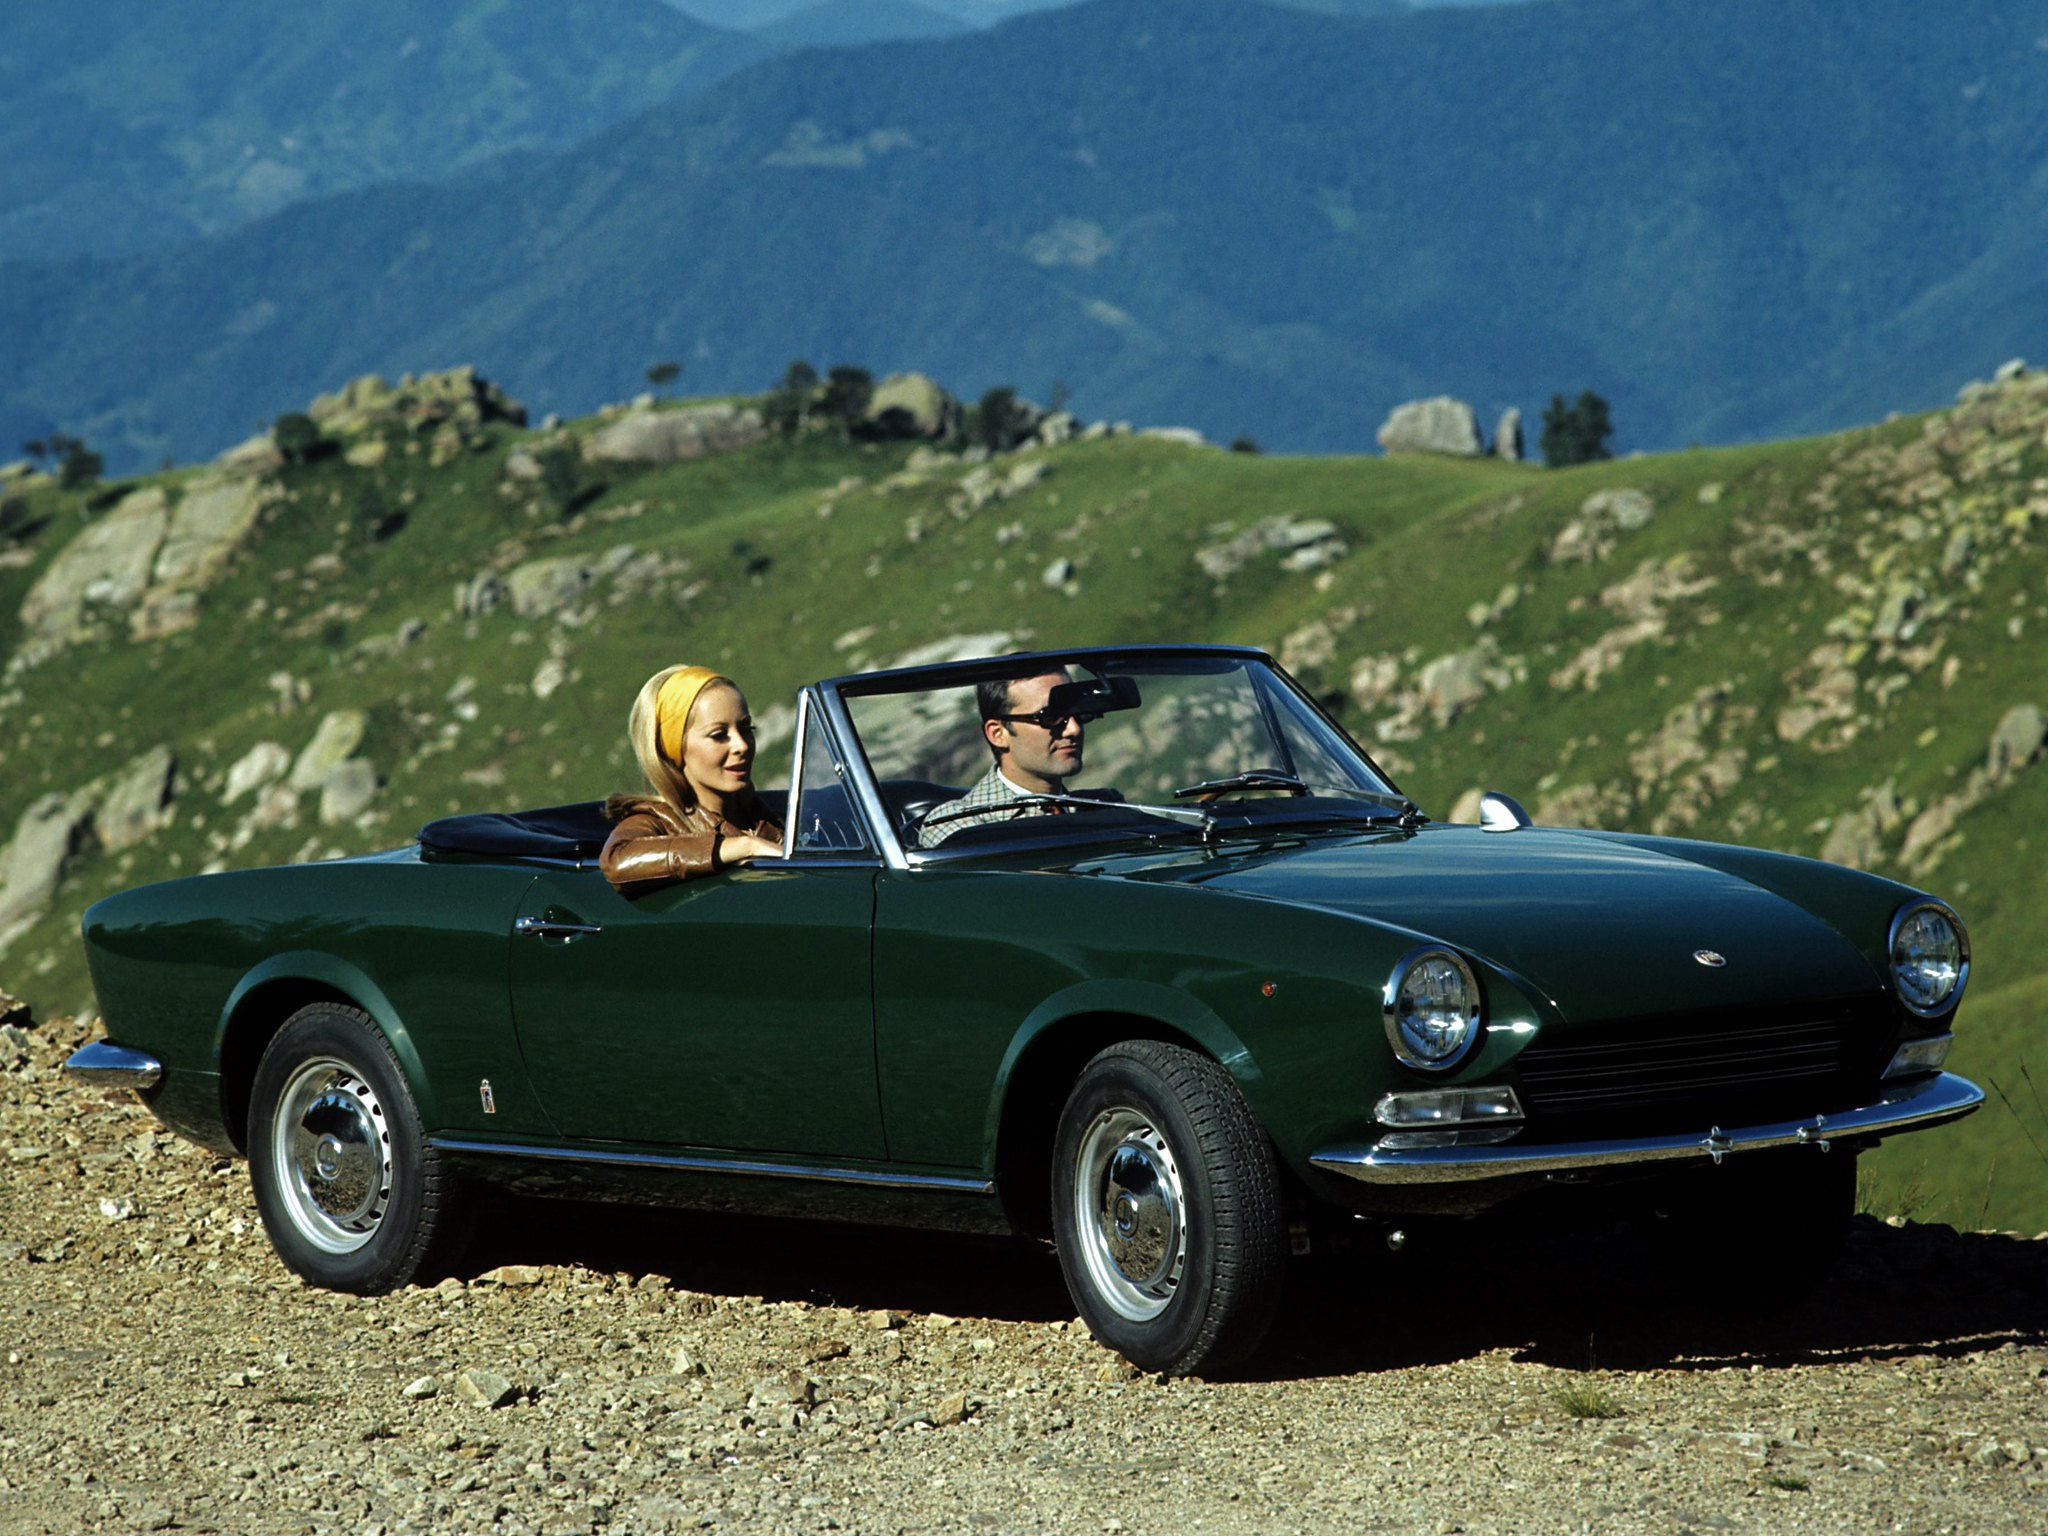 1966 fiat 124 sport spider as classic t wallpaper 2048x1536 155934 wallpaperup. Black Bedroom Furniture Sets. Home Design Ideas